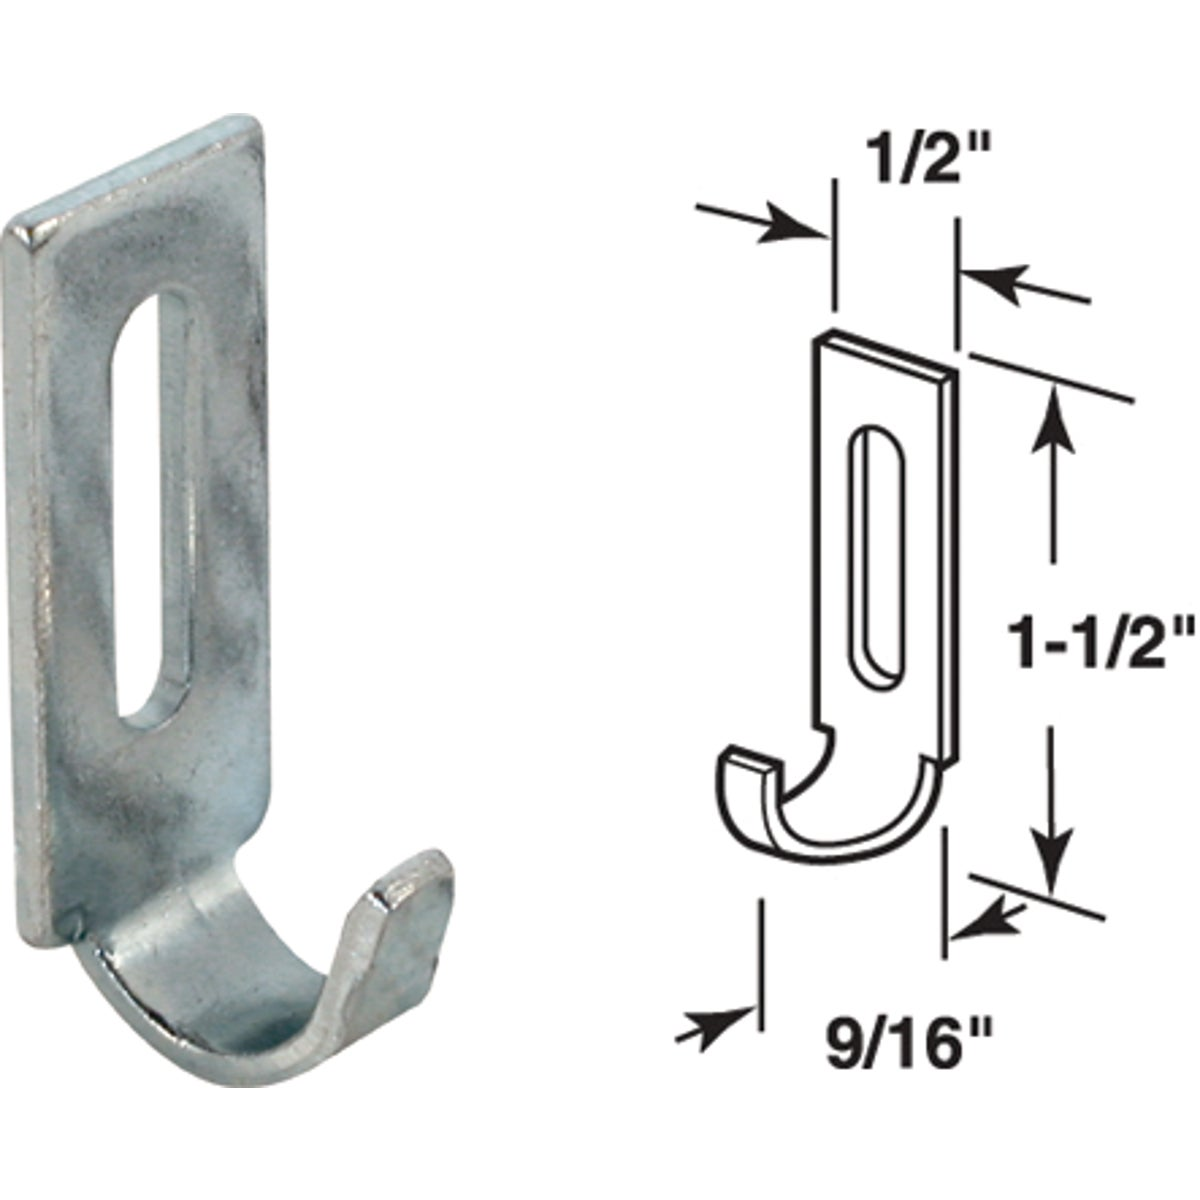 LATCH STRIKE - A-163 by Prime Line Products